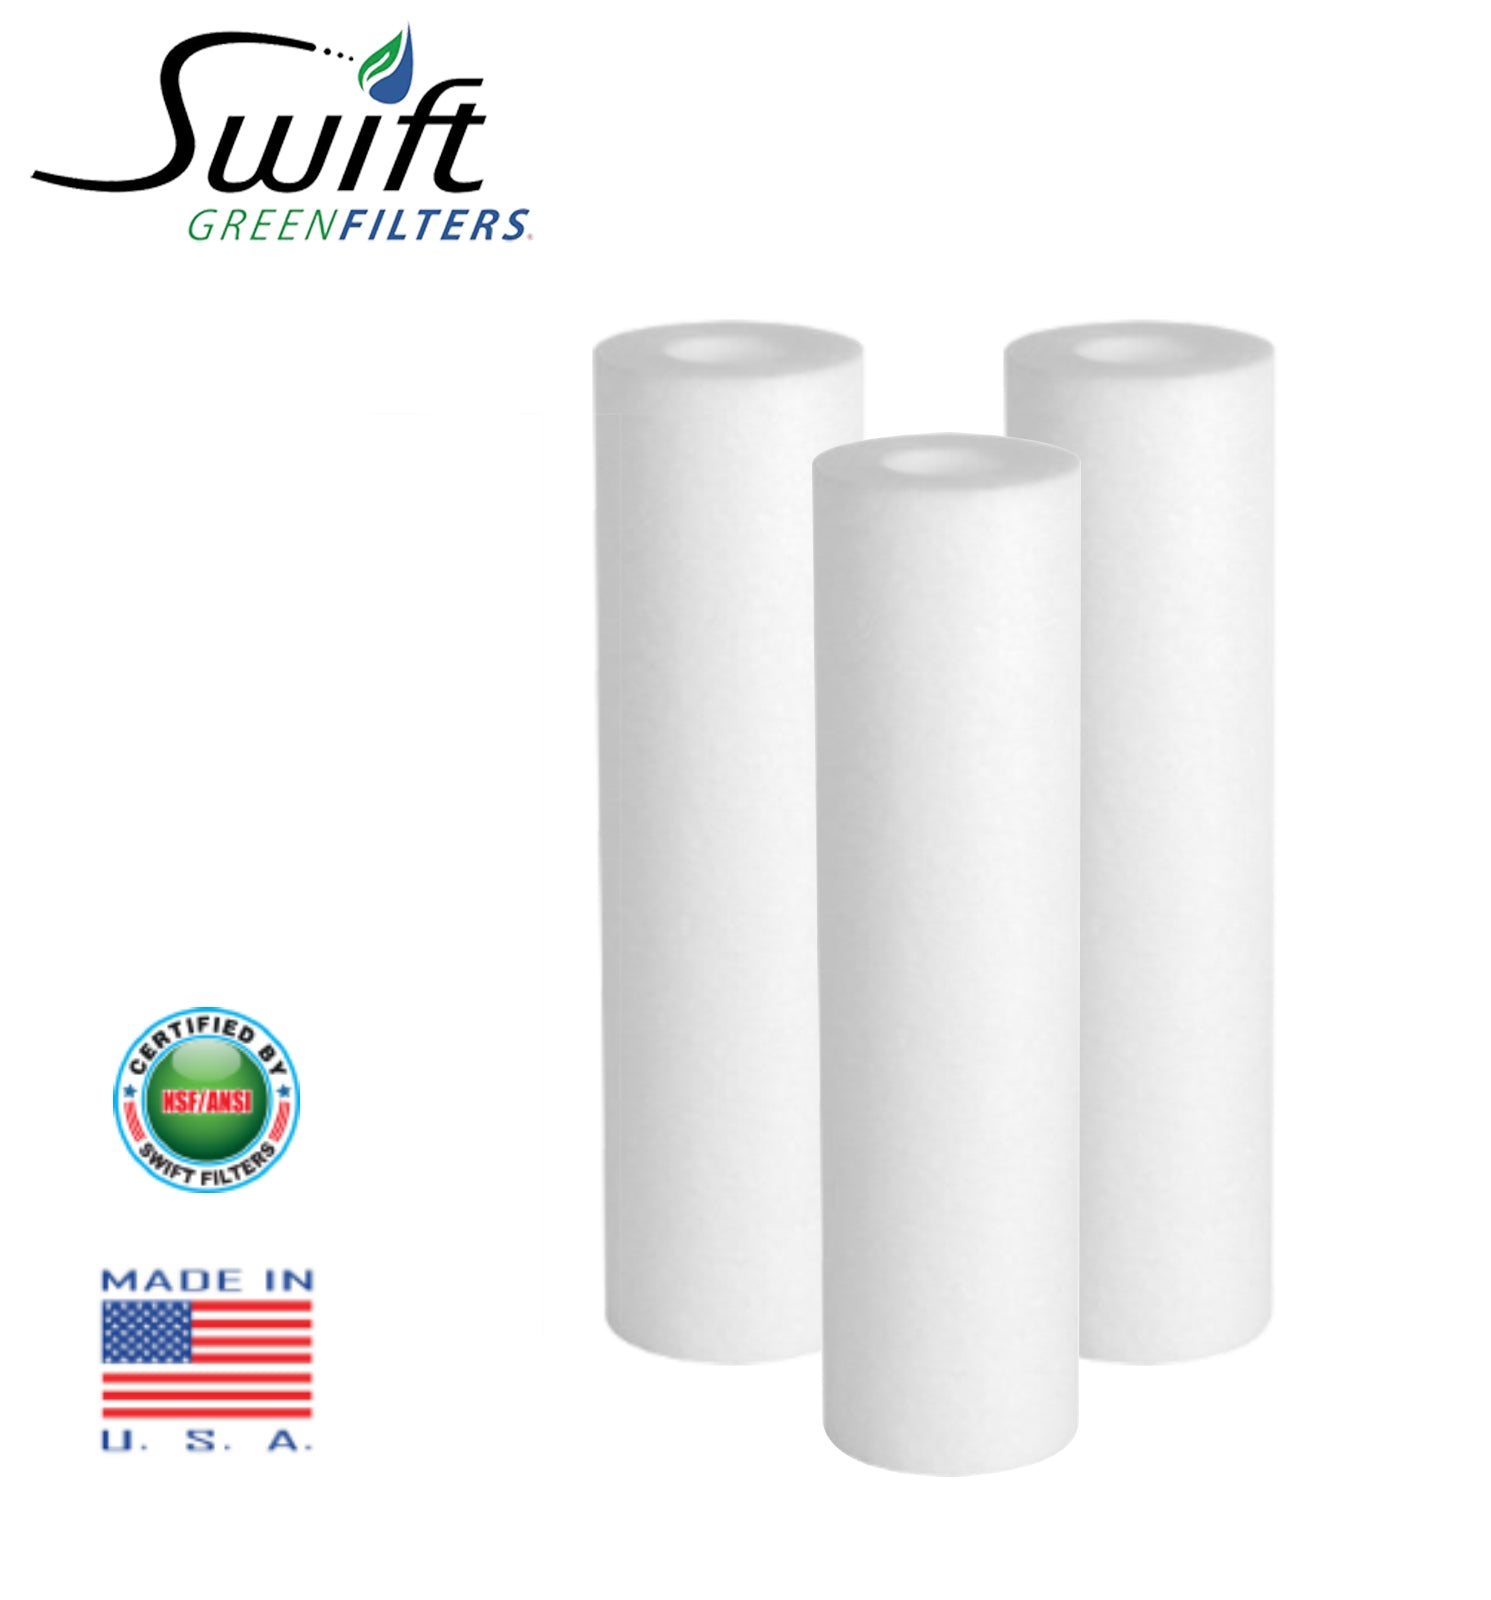 "1 Micron Sediment Water Filter Cartridge for Reverse Osmosis 2.5"" x 40"" by Swift Green Filters"